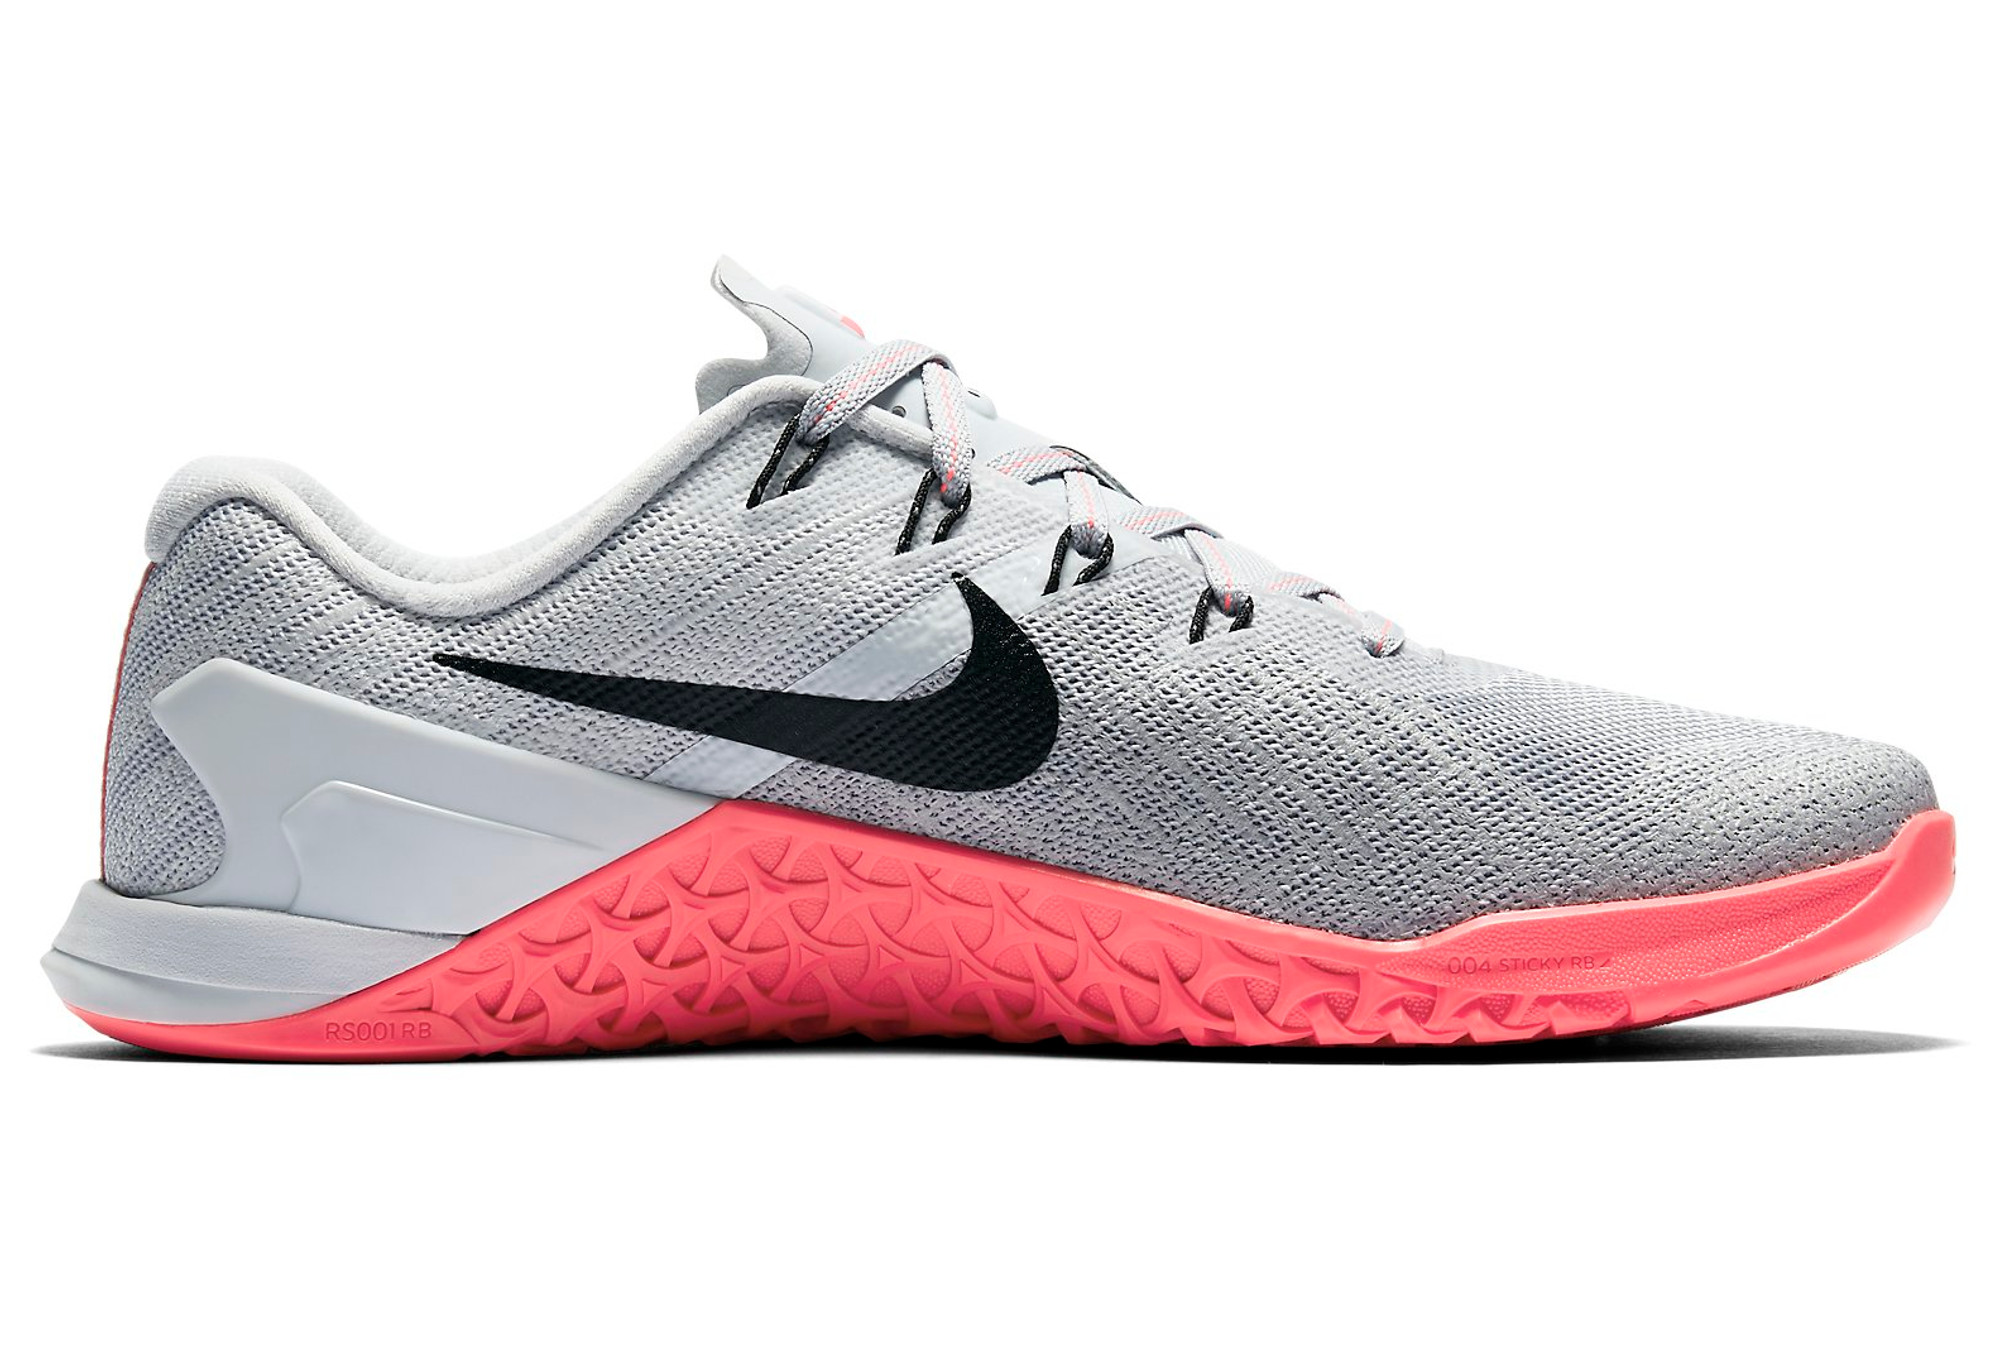 Nike Gris De Femme Training Chaussures Rose Cross Metcon 3 p0ndxTIx